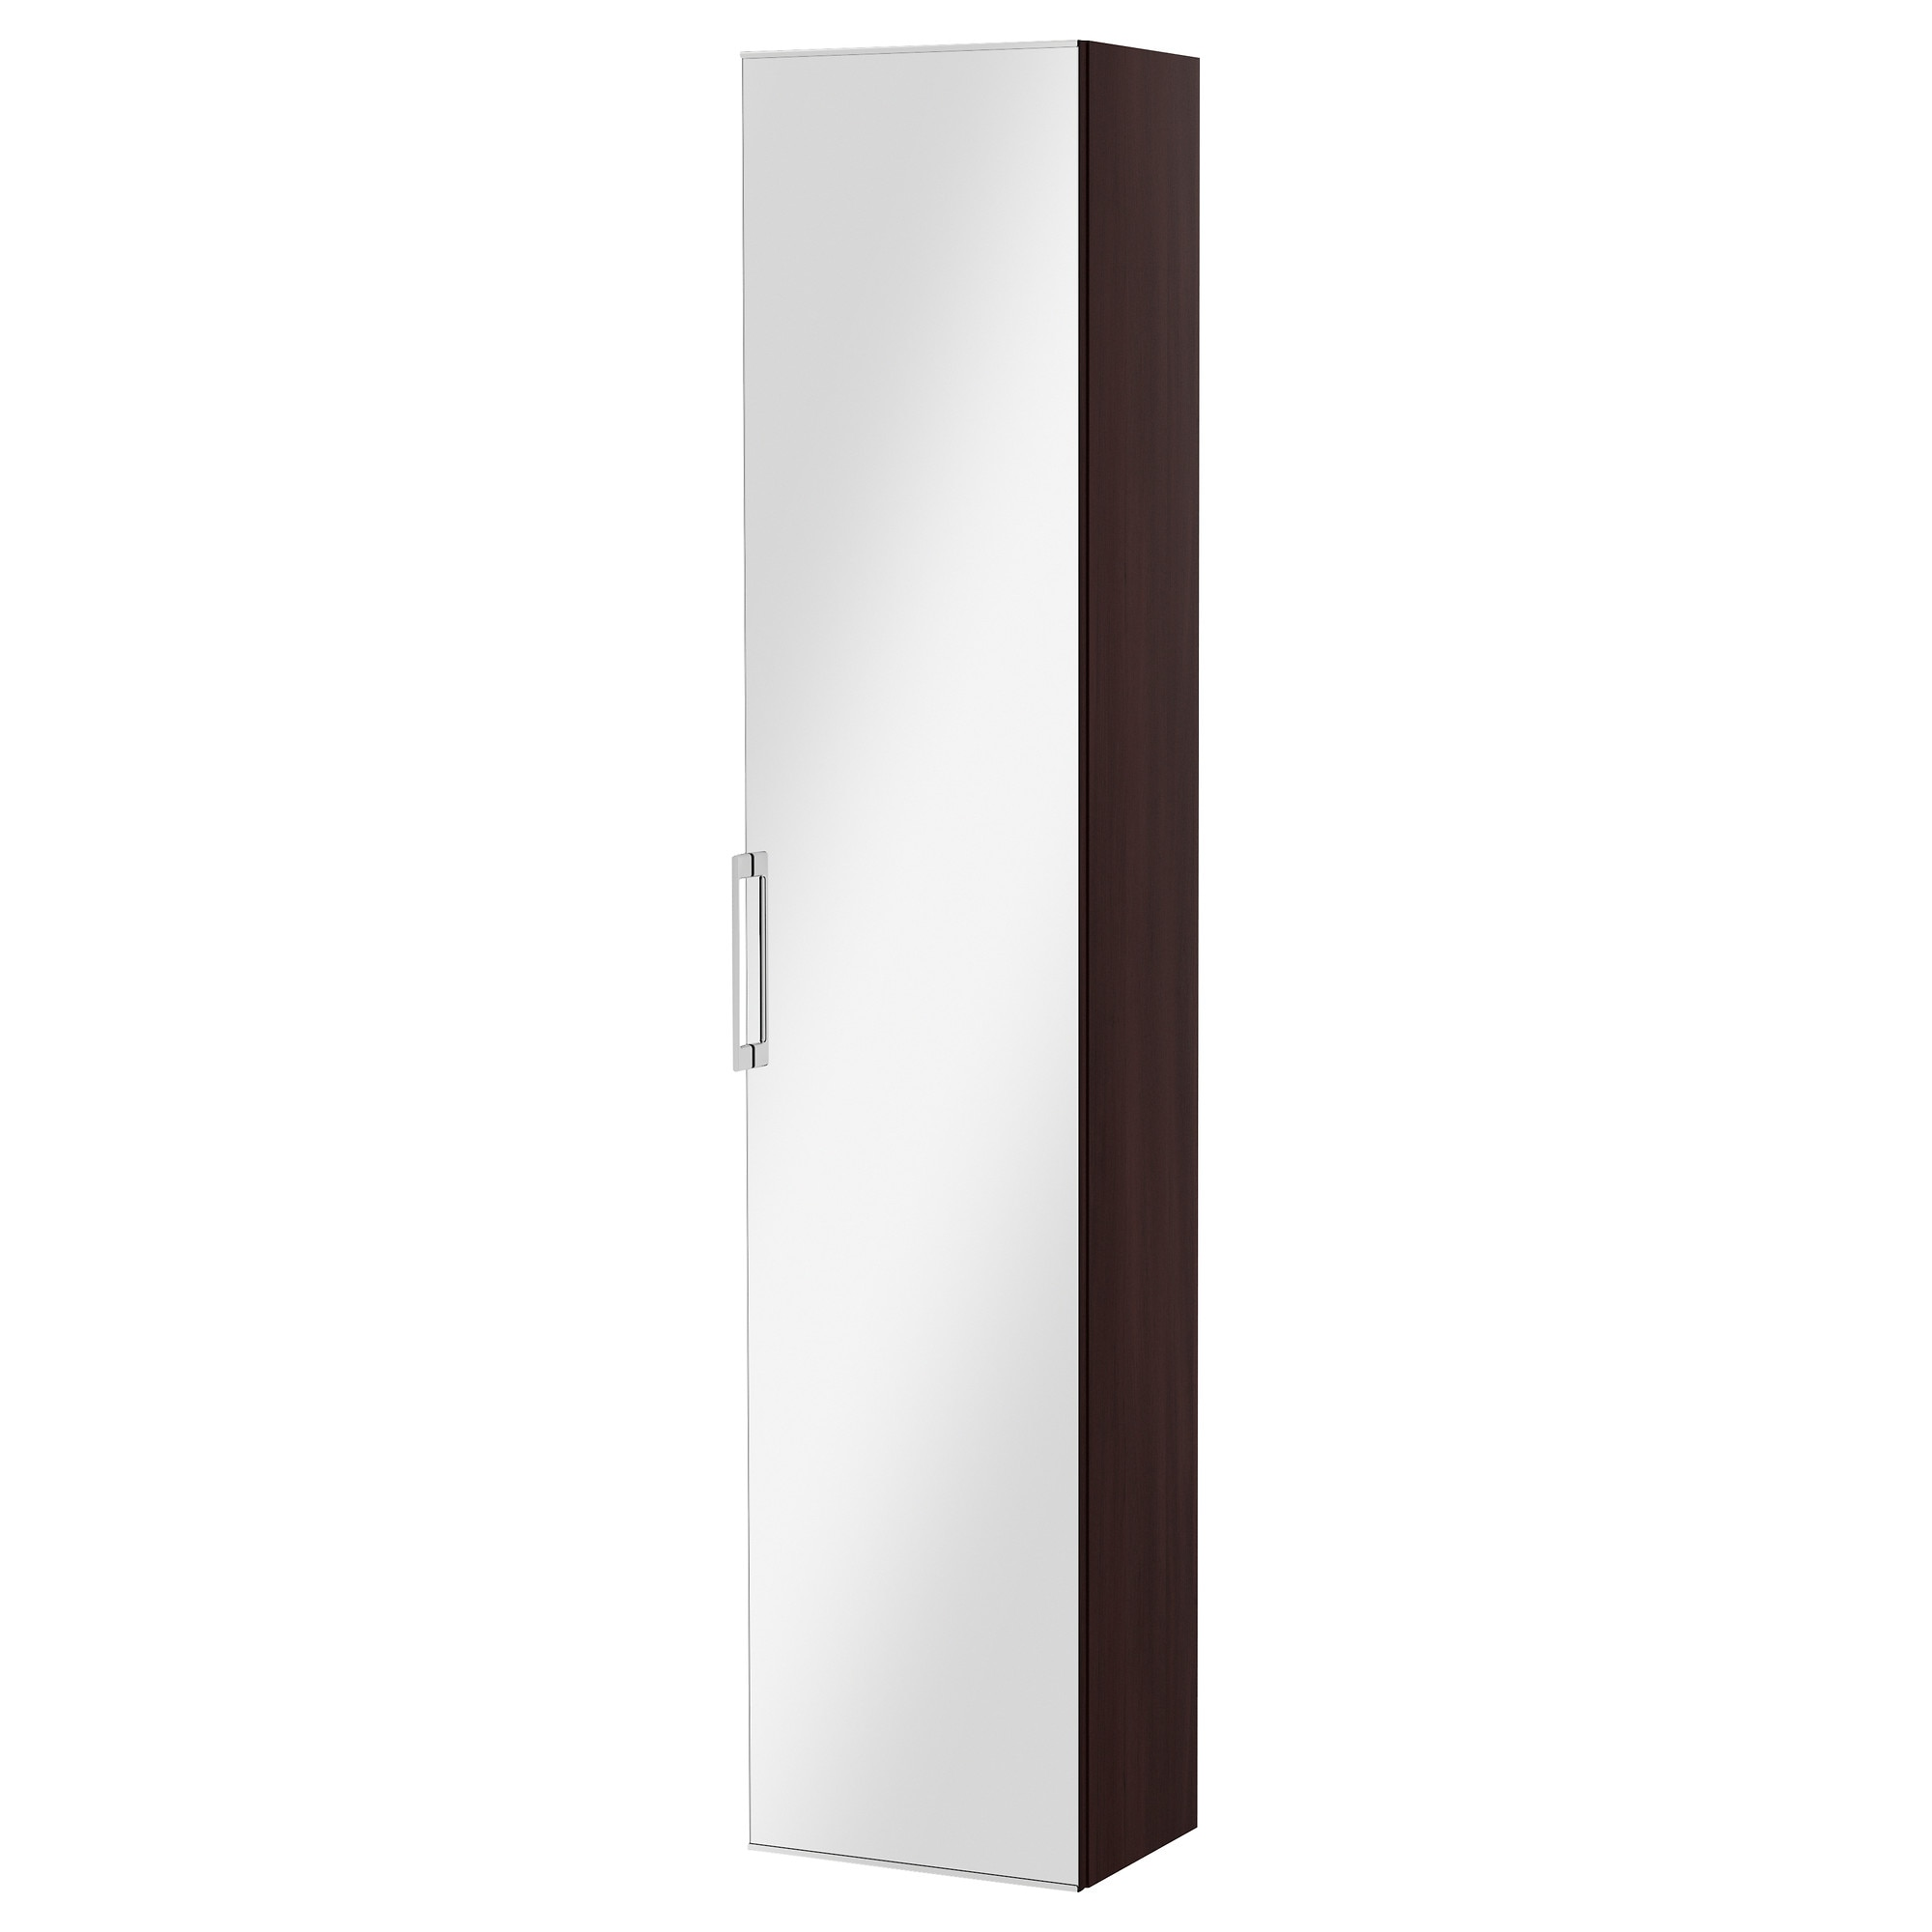 Bathroom Mirror Door bathroom cabinets - high & tall - ikea